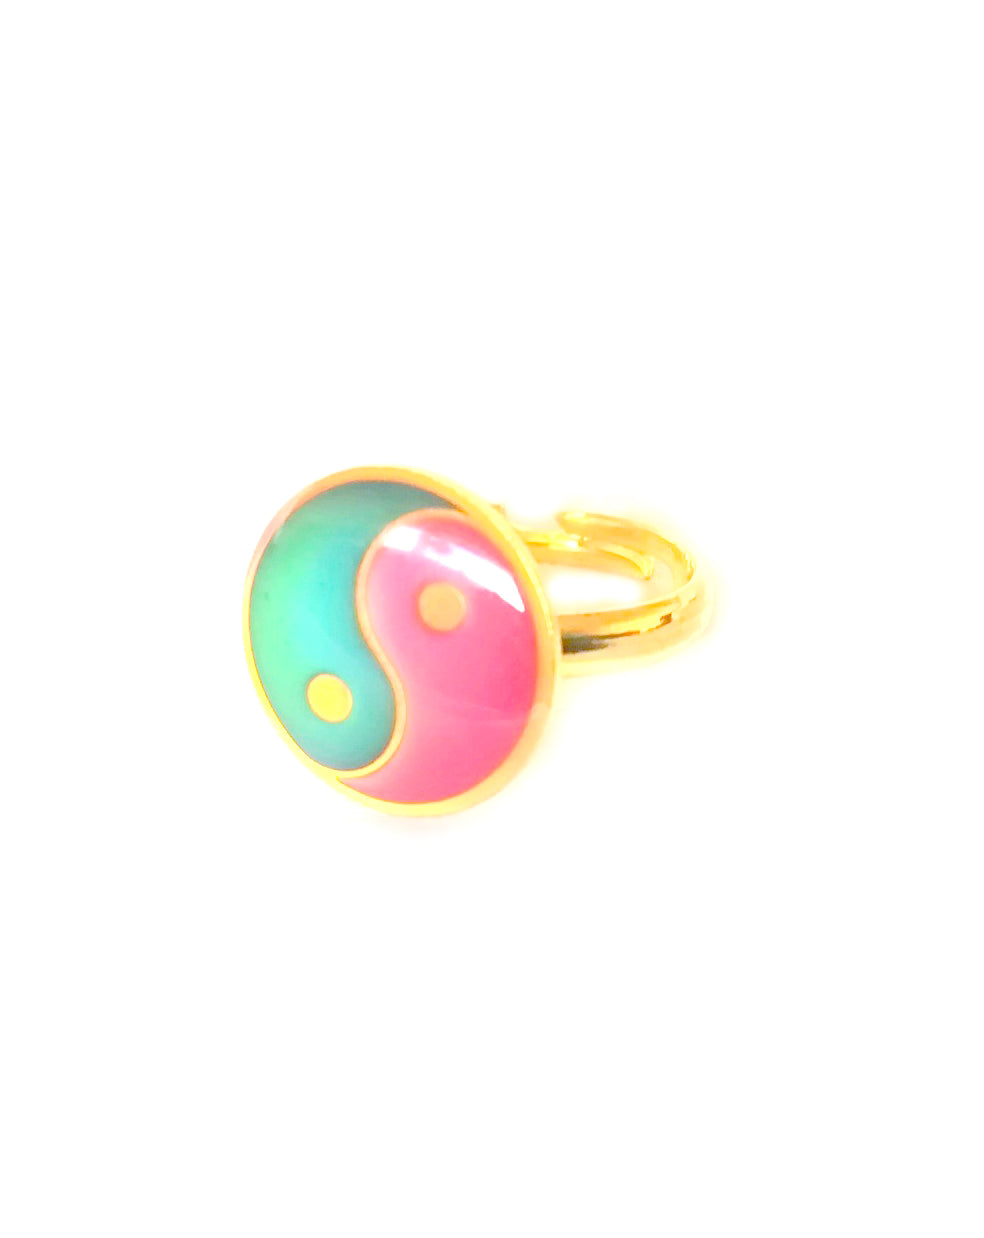 a child sized yin yang mood ring with a golden band by best mood rings